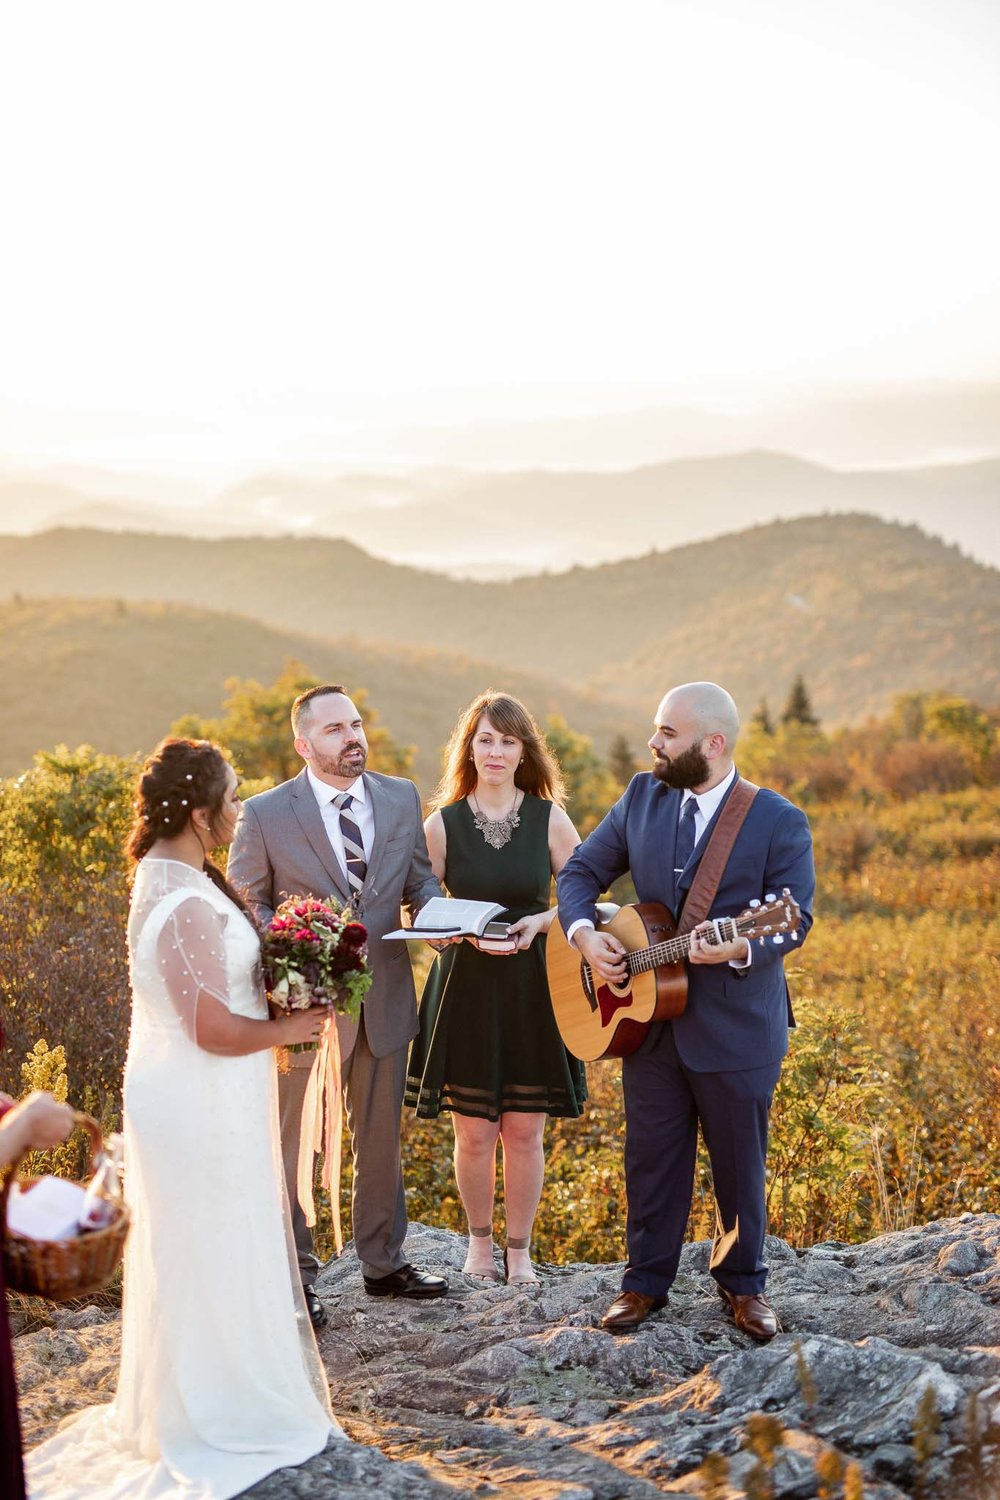 Bride and groom lead worship song at their mountain wedding ceremony on Black Balsam Knob on the Blue Ridge Parkway in Asheville North Carolina